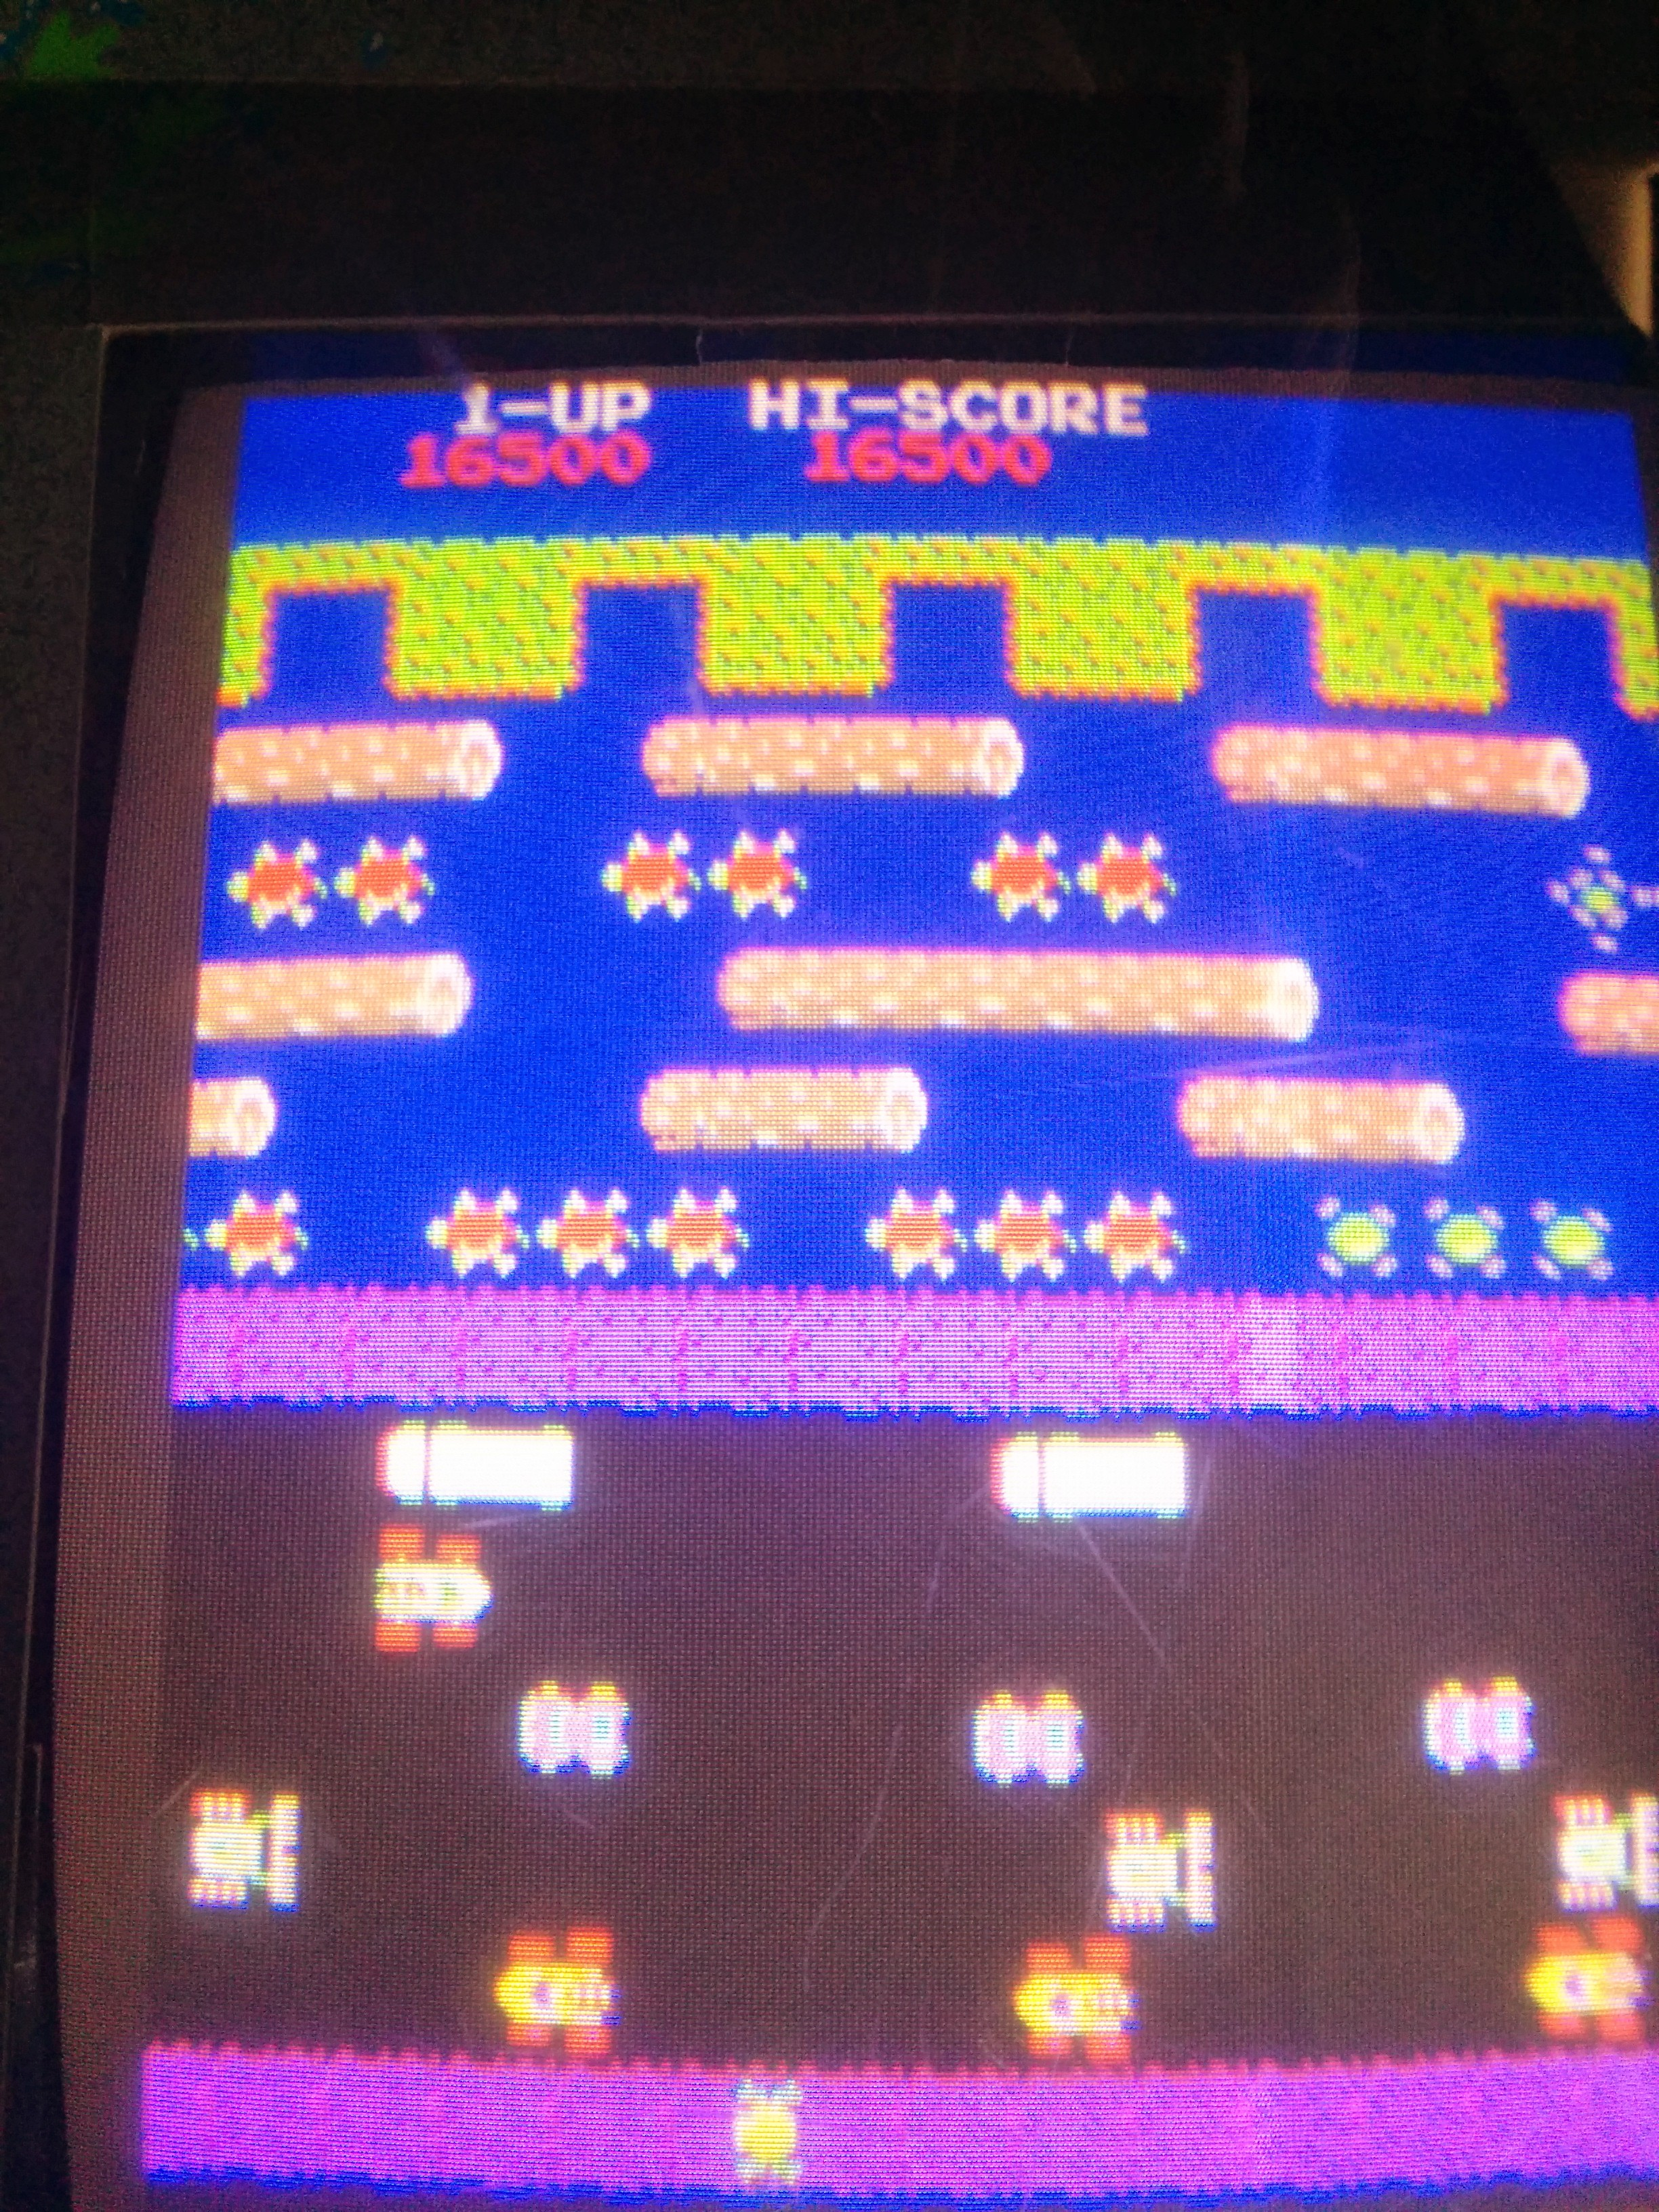 Frogger 16,500 points